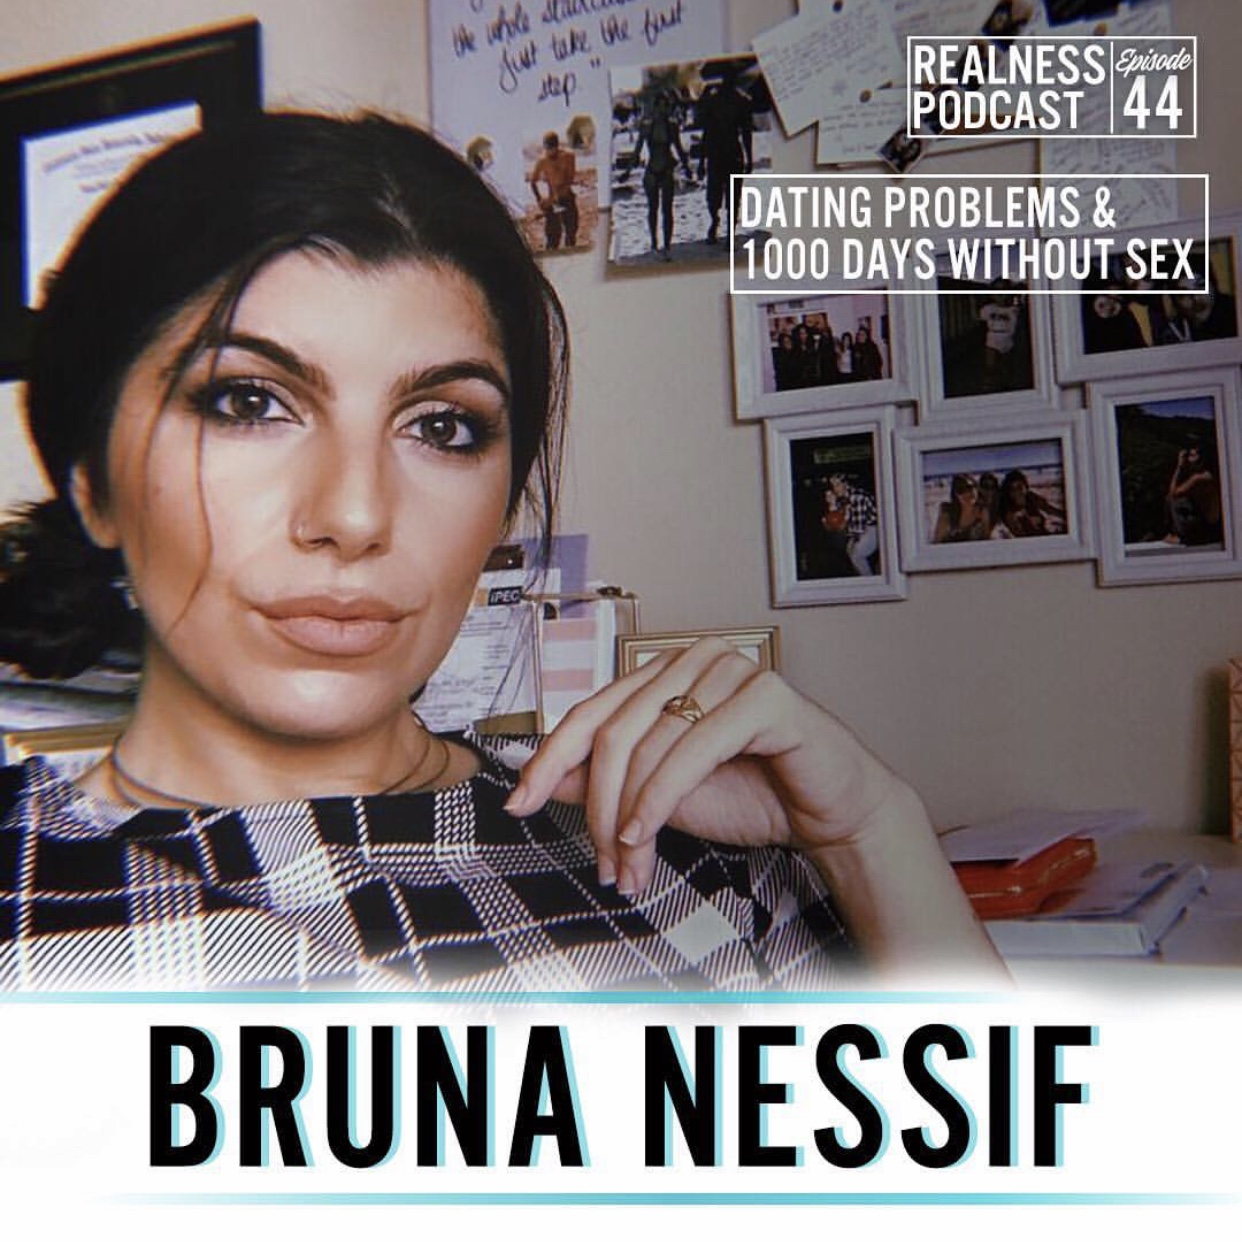 bruna-nessif-the-realness-podcast-dating-sex-conner-moore.jpg